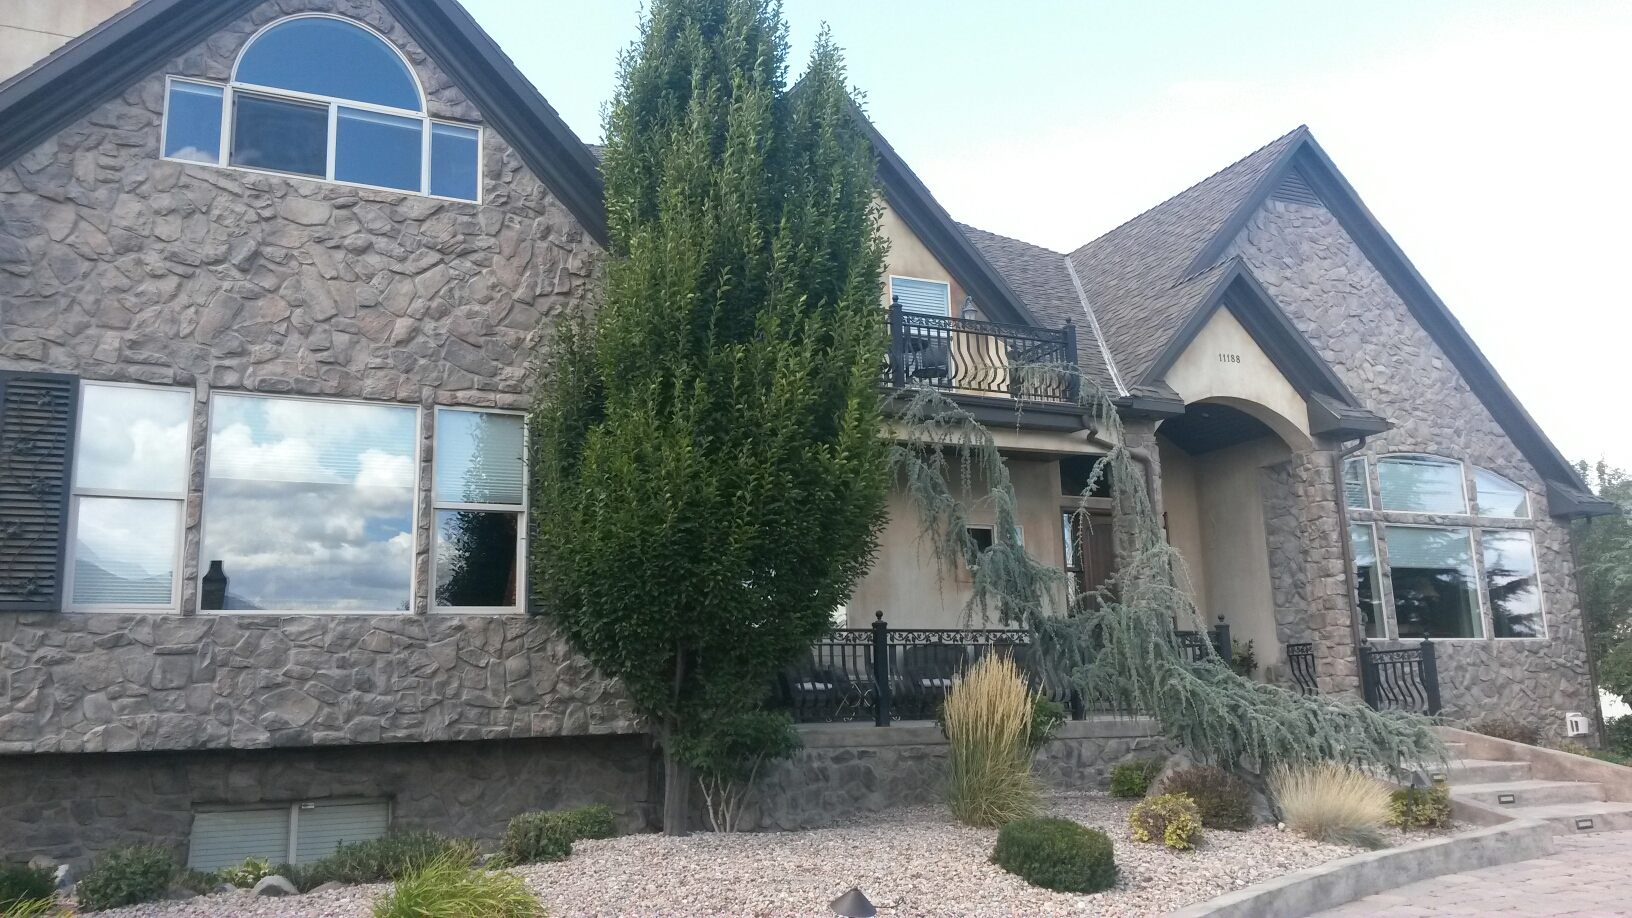 South Jordan, UT - This is one of my favorite homes in South Jordan. It is beautifully finished and has very nice workmanship. This is also a repeat customer. We were out last year and cleaned up a little bit of mold for him and now his home is for sale and we're back cleaning up a very small area of mold.